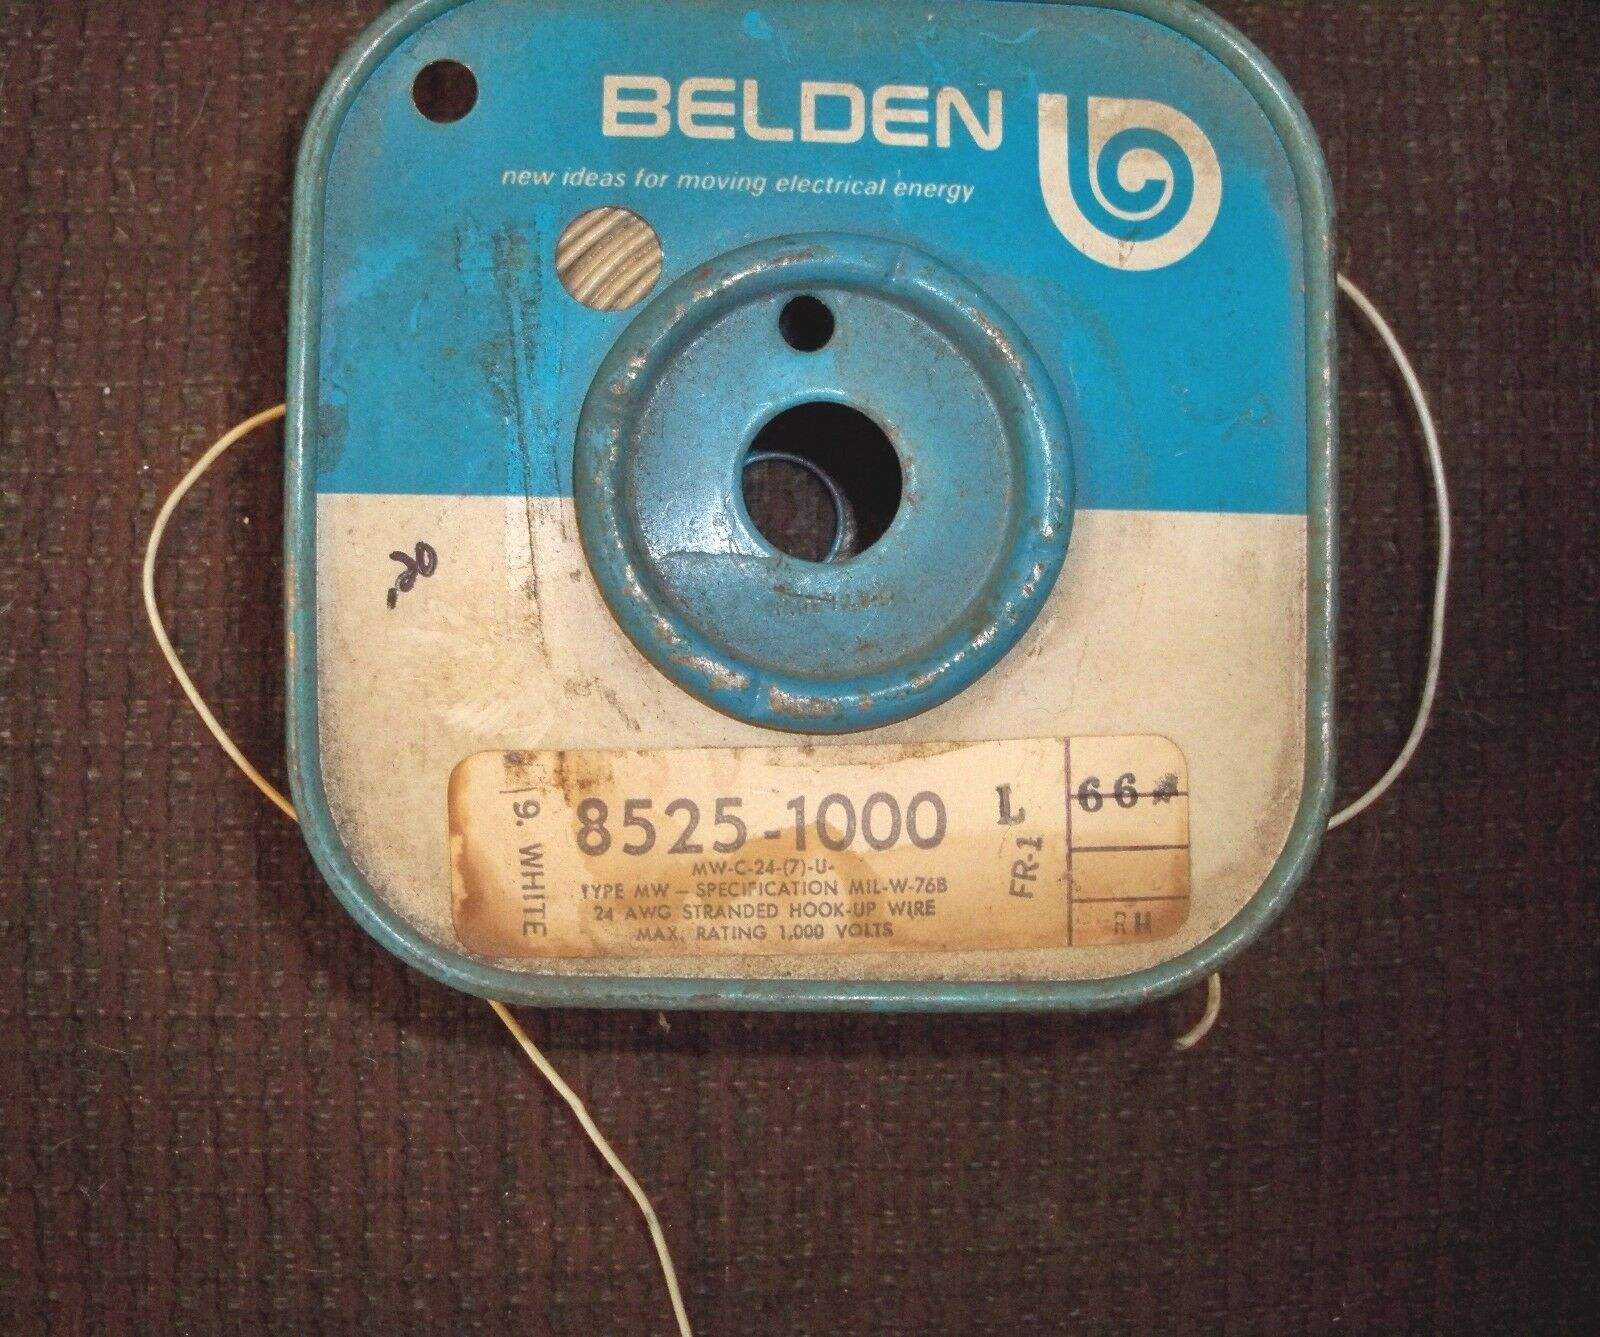 10ft Belden 24 AWG Stranded Hook-up Wire - Max Rating 1000 Volts ...